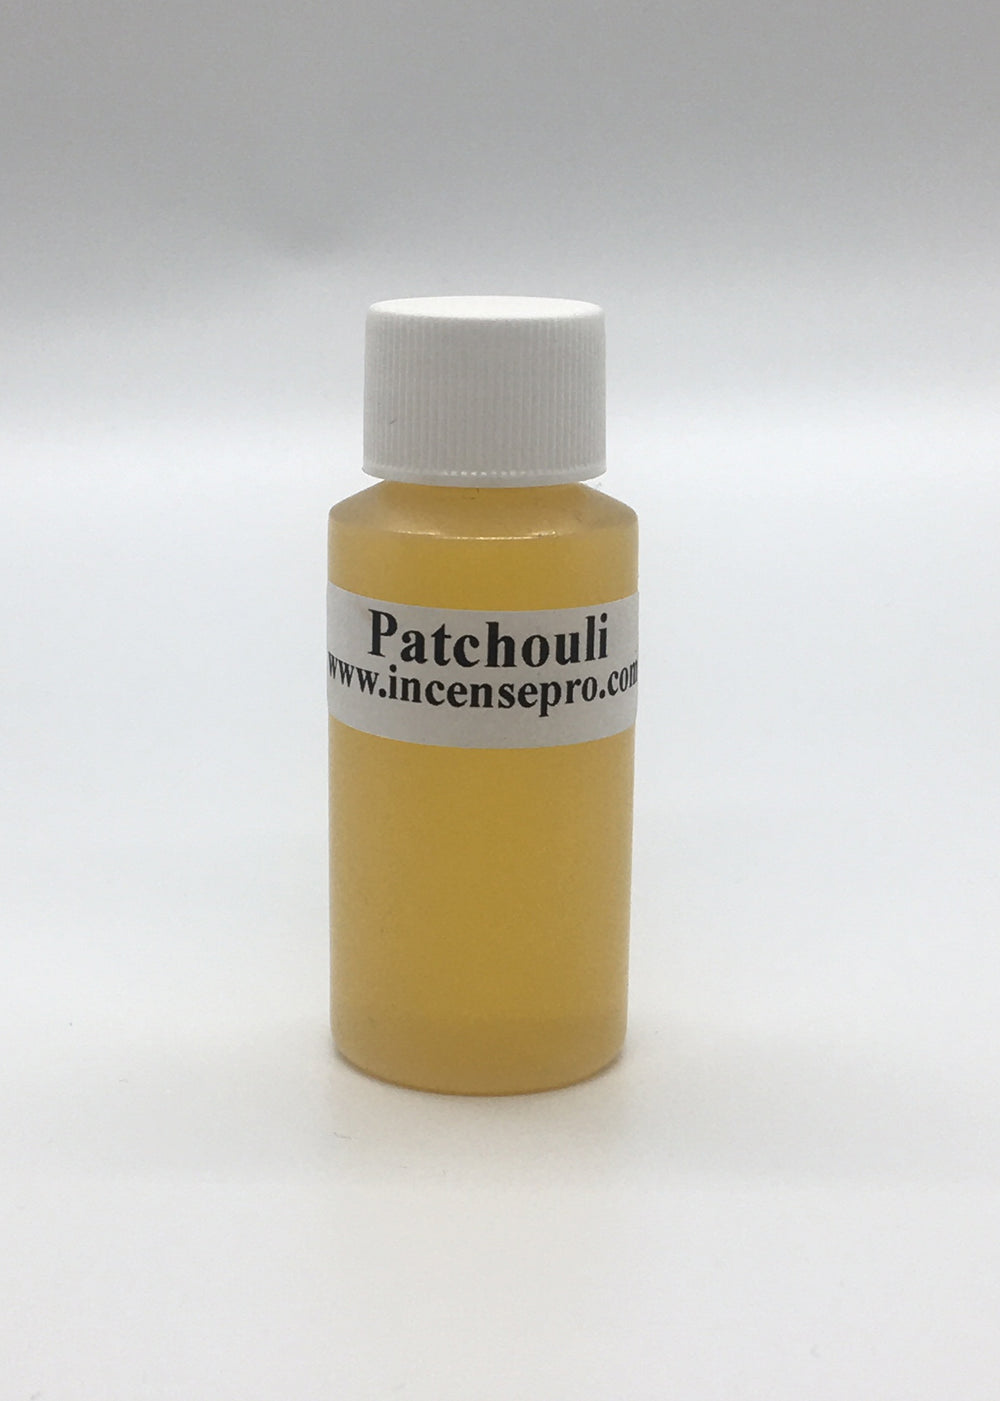 Buy Patchouli Burning Oil